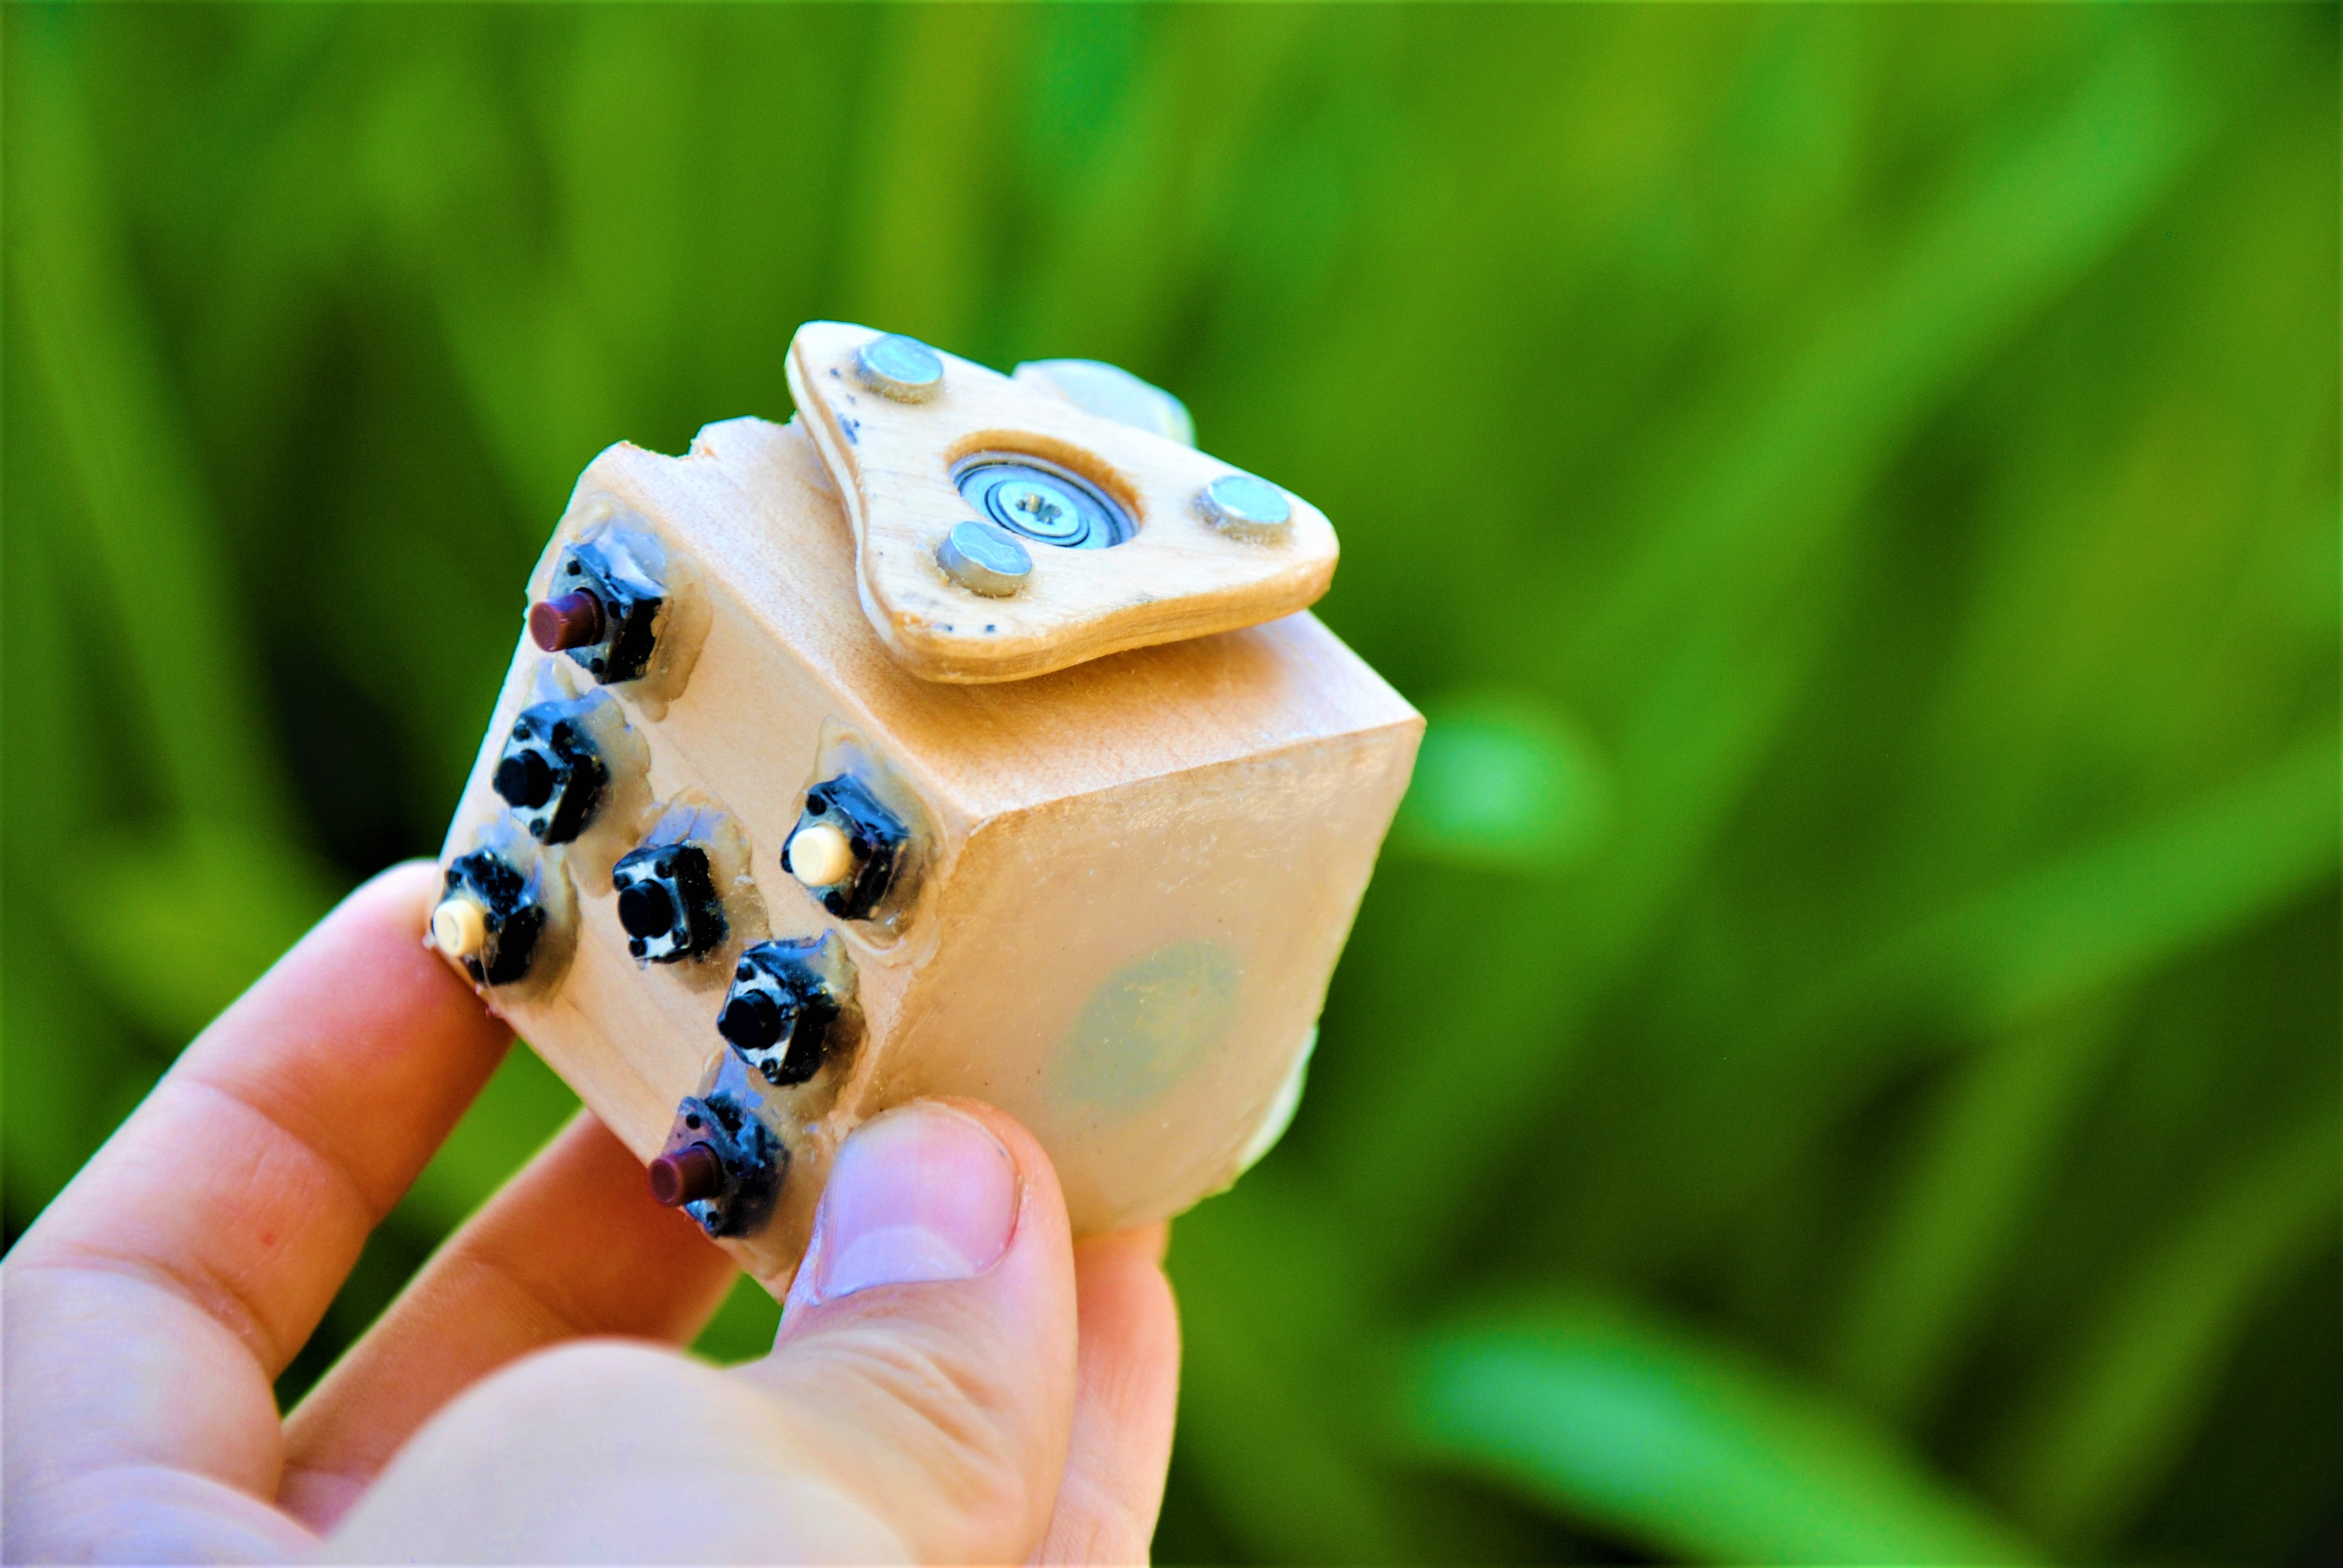 Picture of How to Make a Wooden Fidget Cube